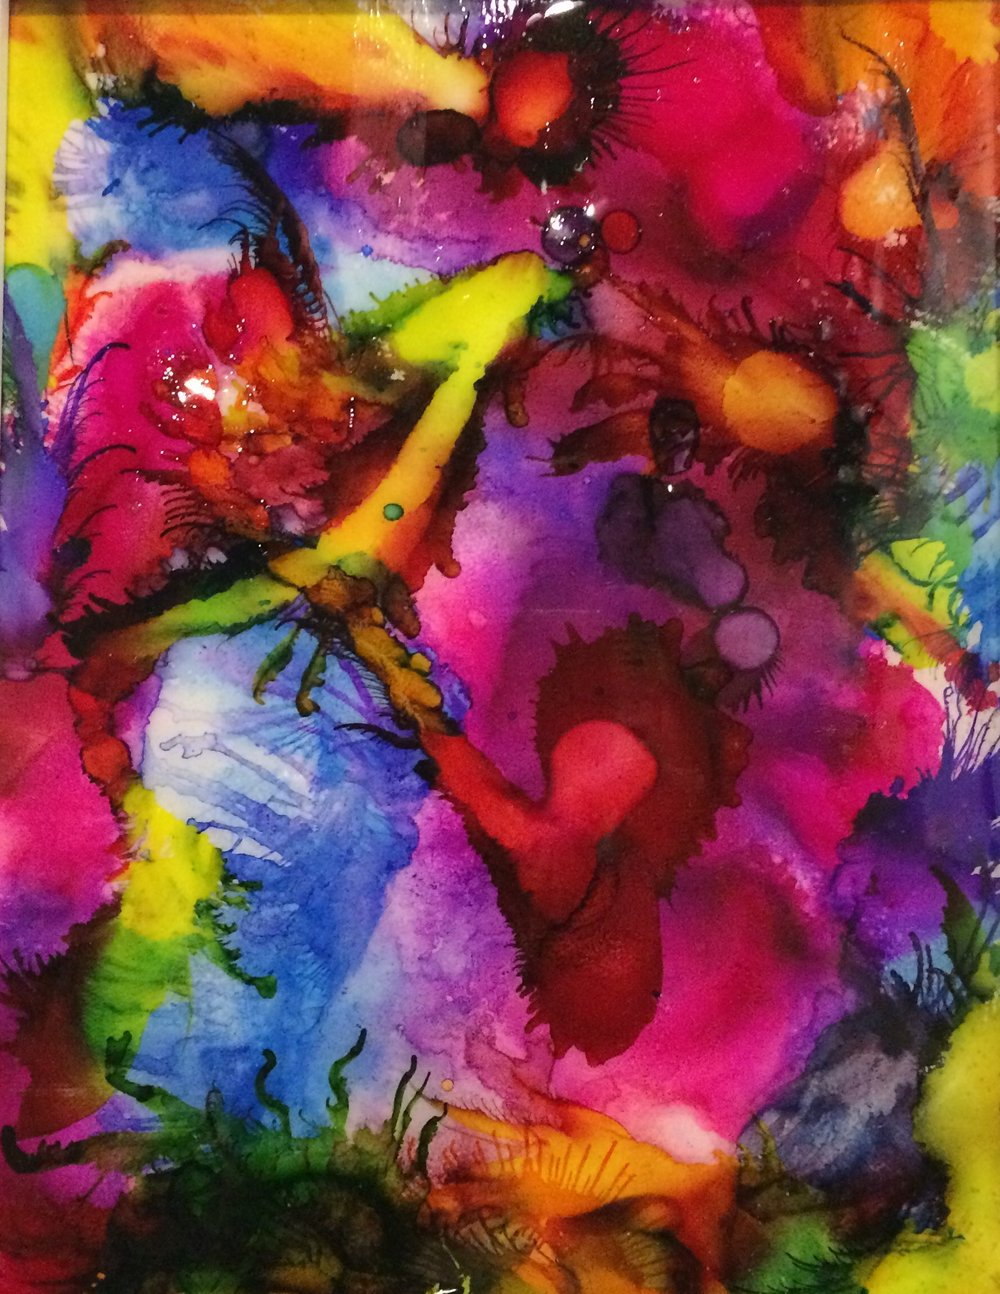 """Circus Colors"" by Meredith Hayden, Alcohol Ink with air duster on Ceramic Tile, 12x218in, 2018, $350"